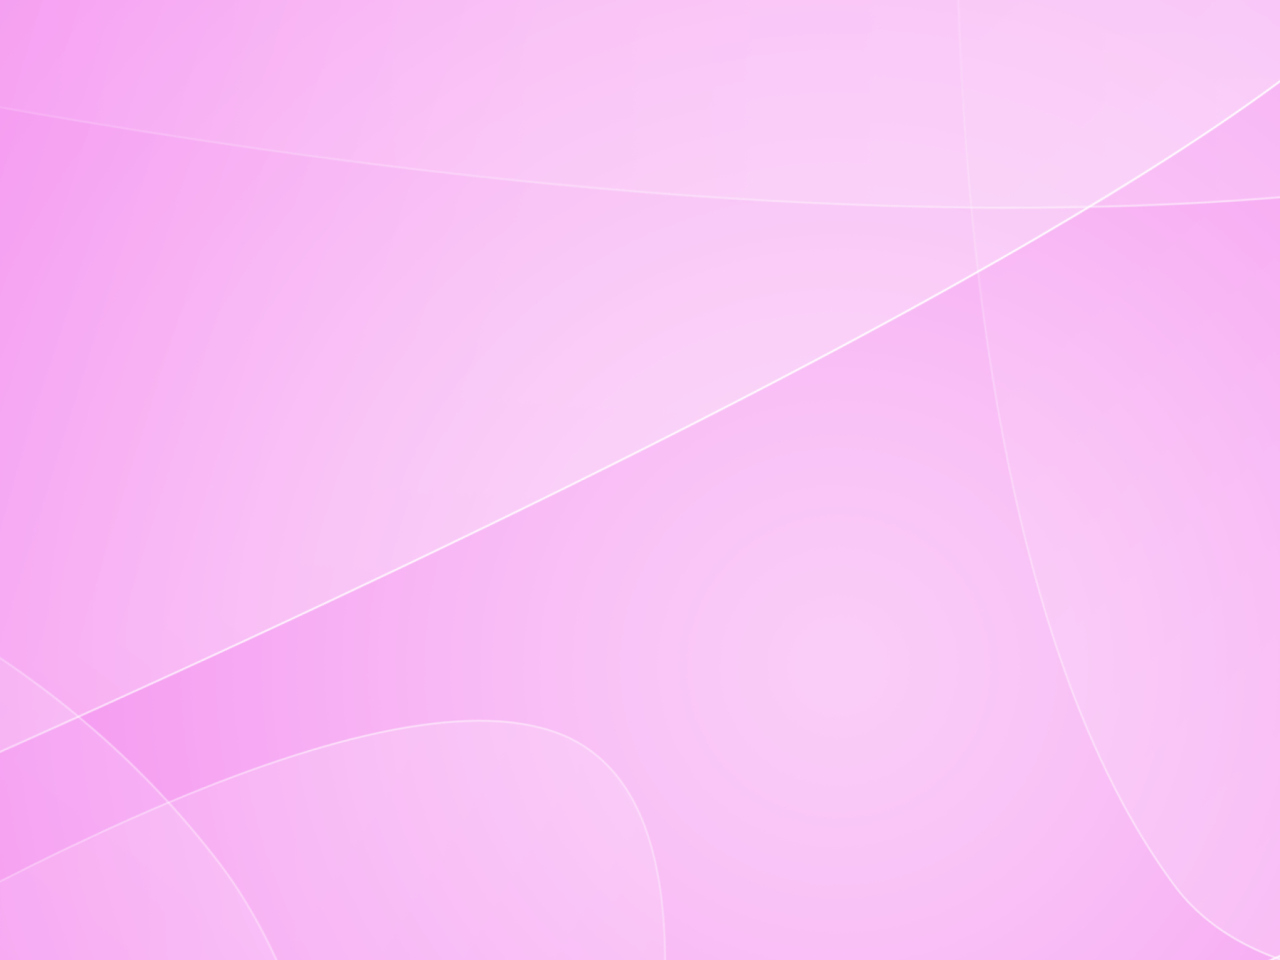 Pink candy background